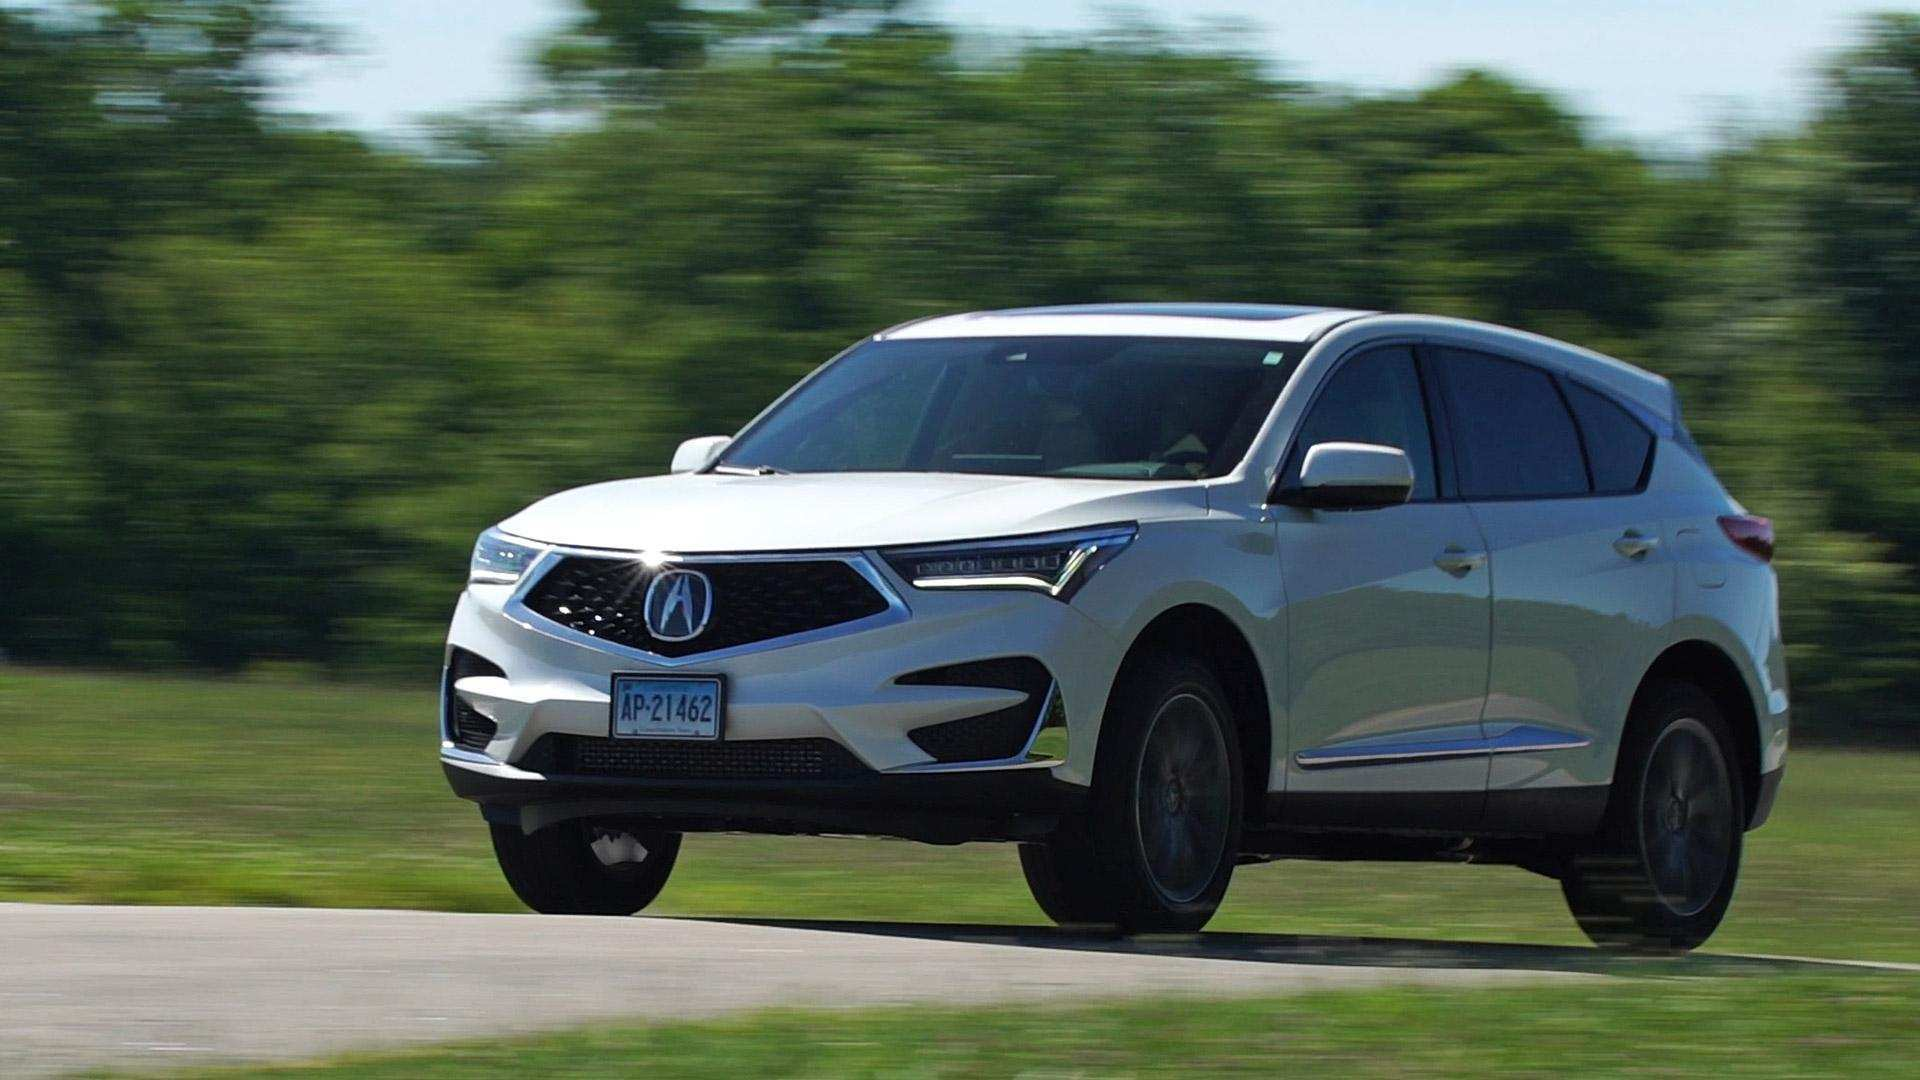 38 New New Acura Rdx 2019 First Drive Release Date And Specs Specs for New Acura Rdx 2019 First Drive Release Date And Specs